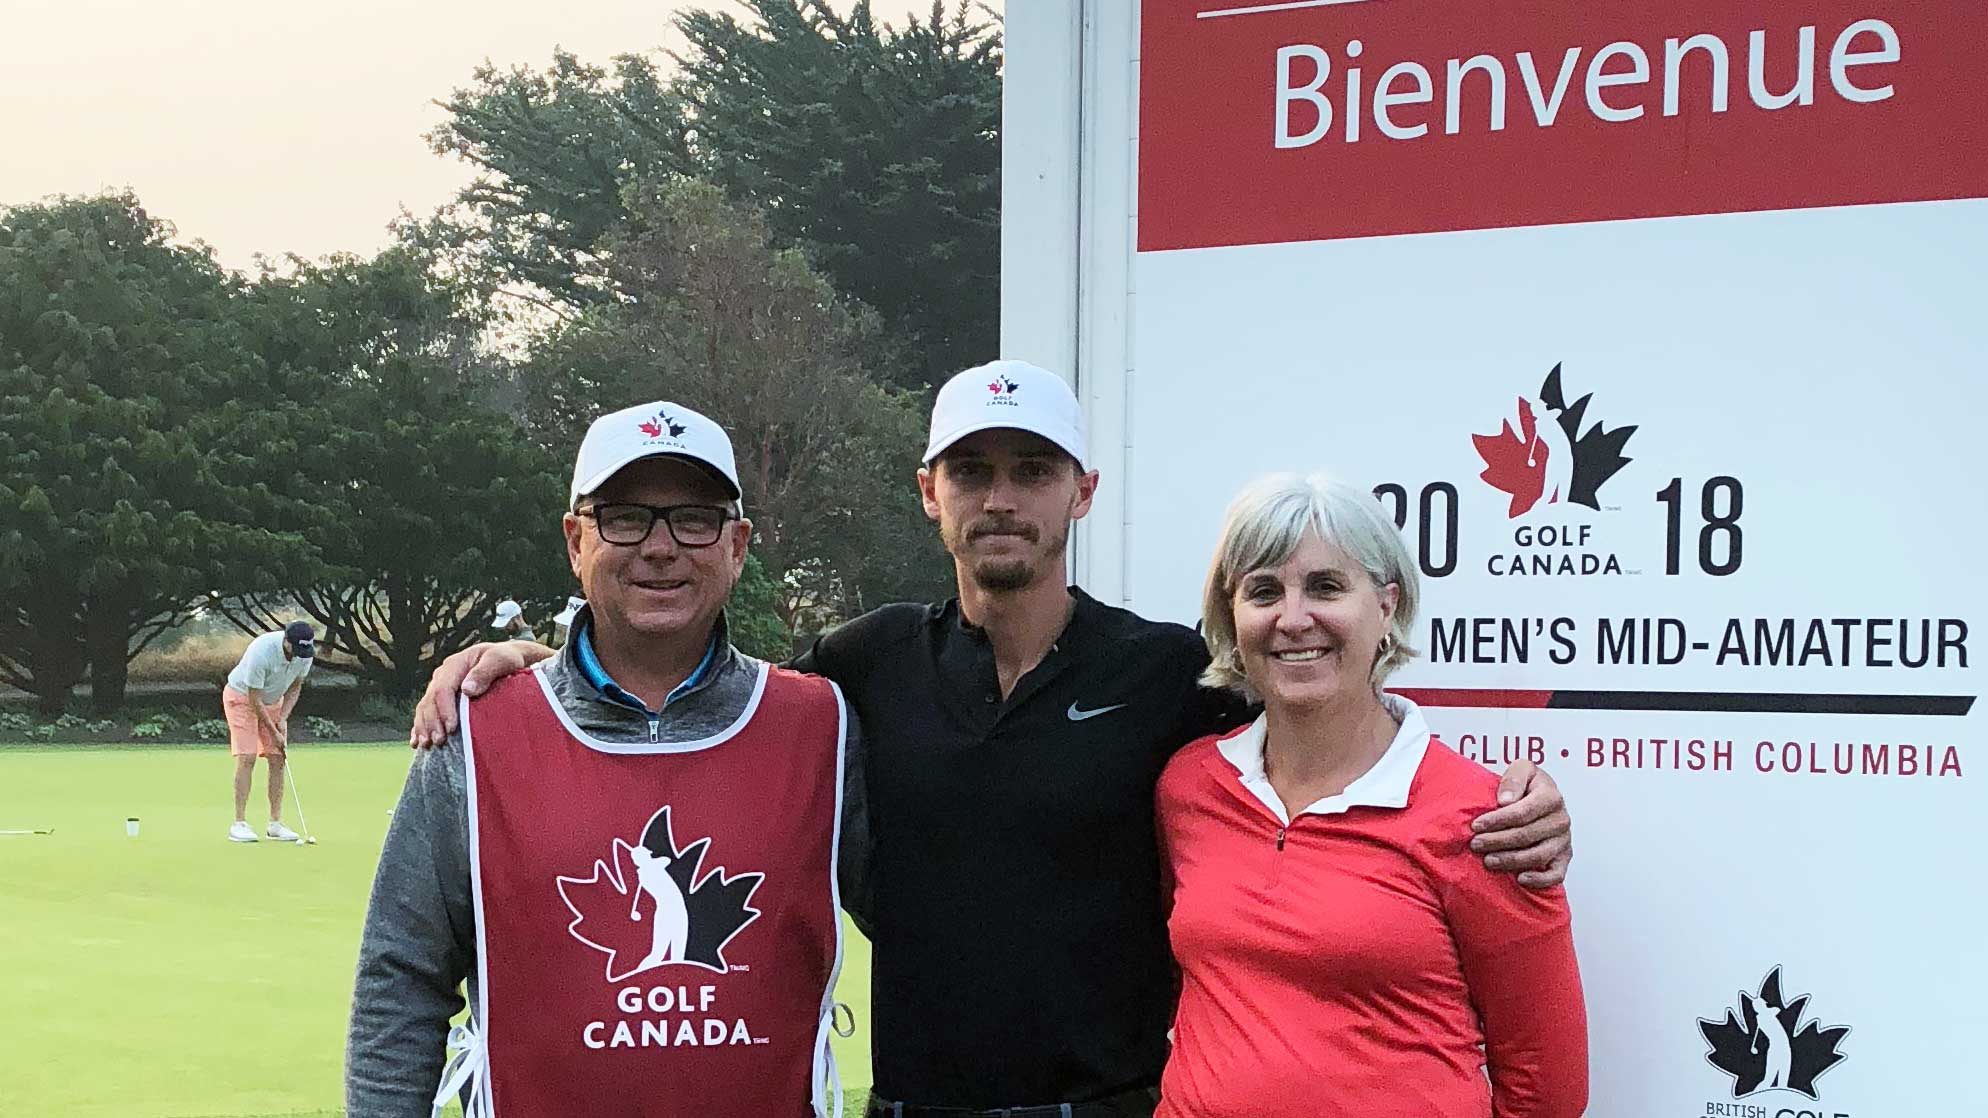 Brent, Colleen, and their son at the Canadian Men's Mid-Amateur Championship in Victoria, BC.